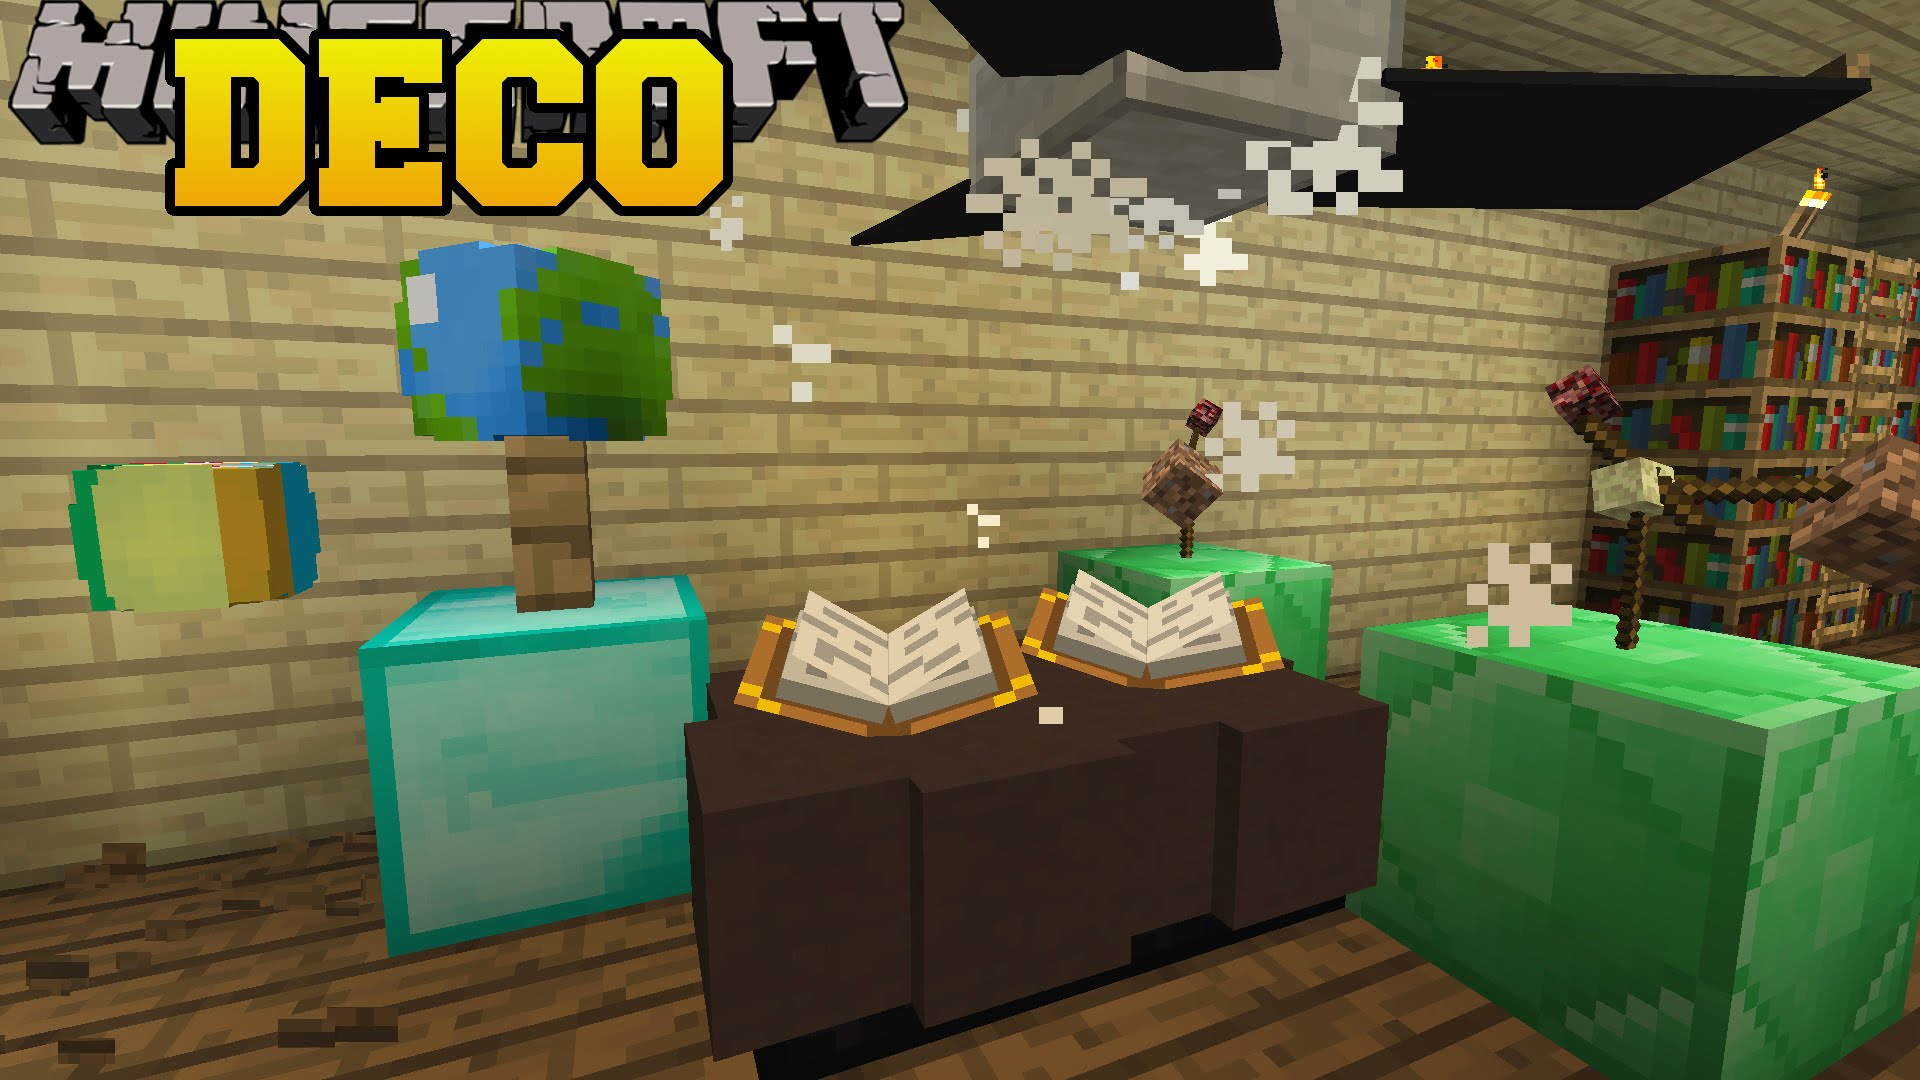 decocraft 2 mod for minecraft 1 9 4 1 8 9 1 and 1 6 4 minecraft mods. Black Bedroom Furniture Sets. Home Design Ideas